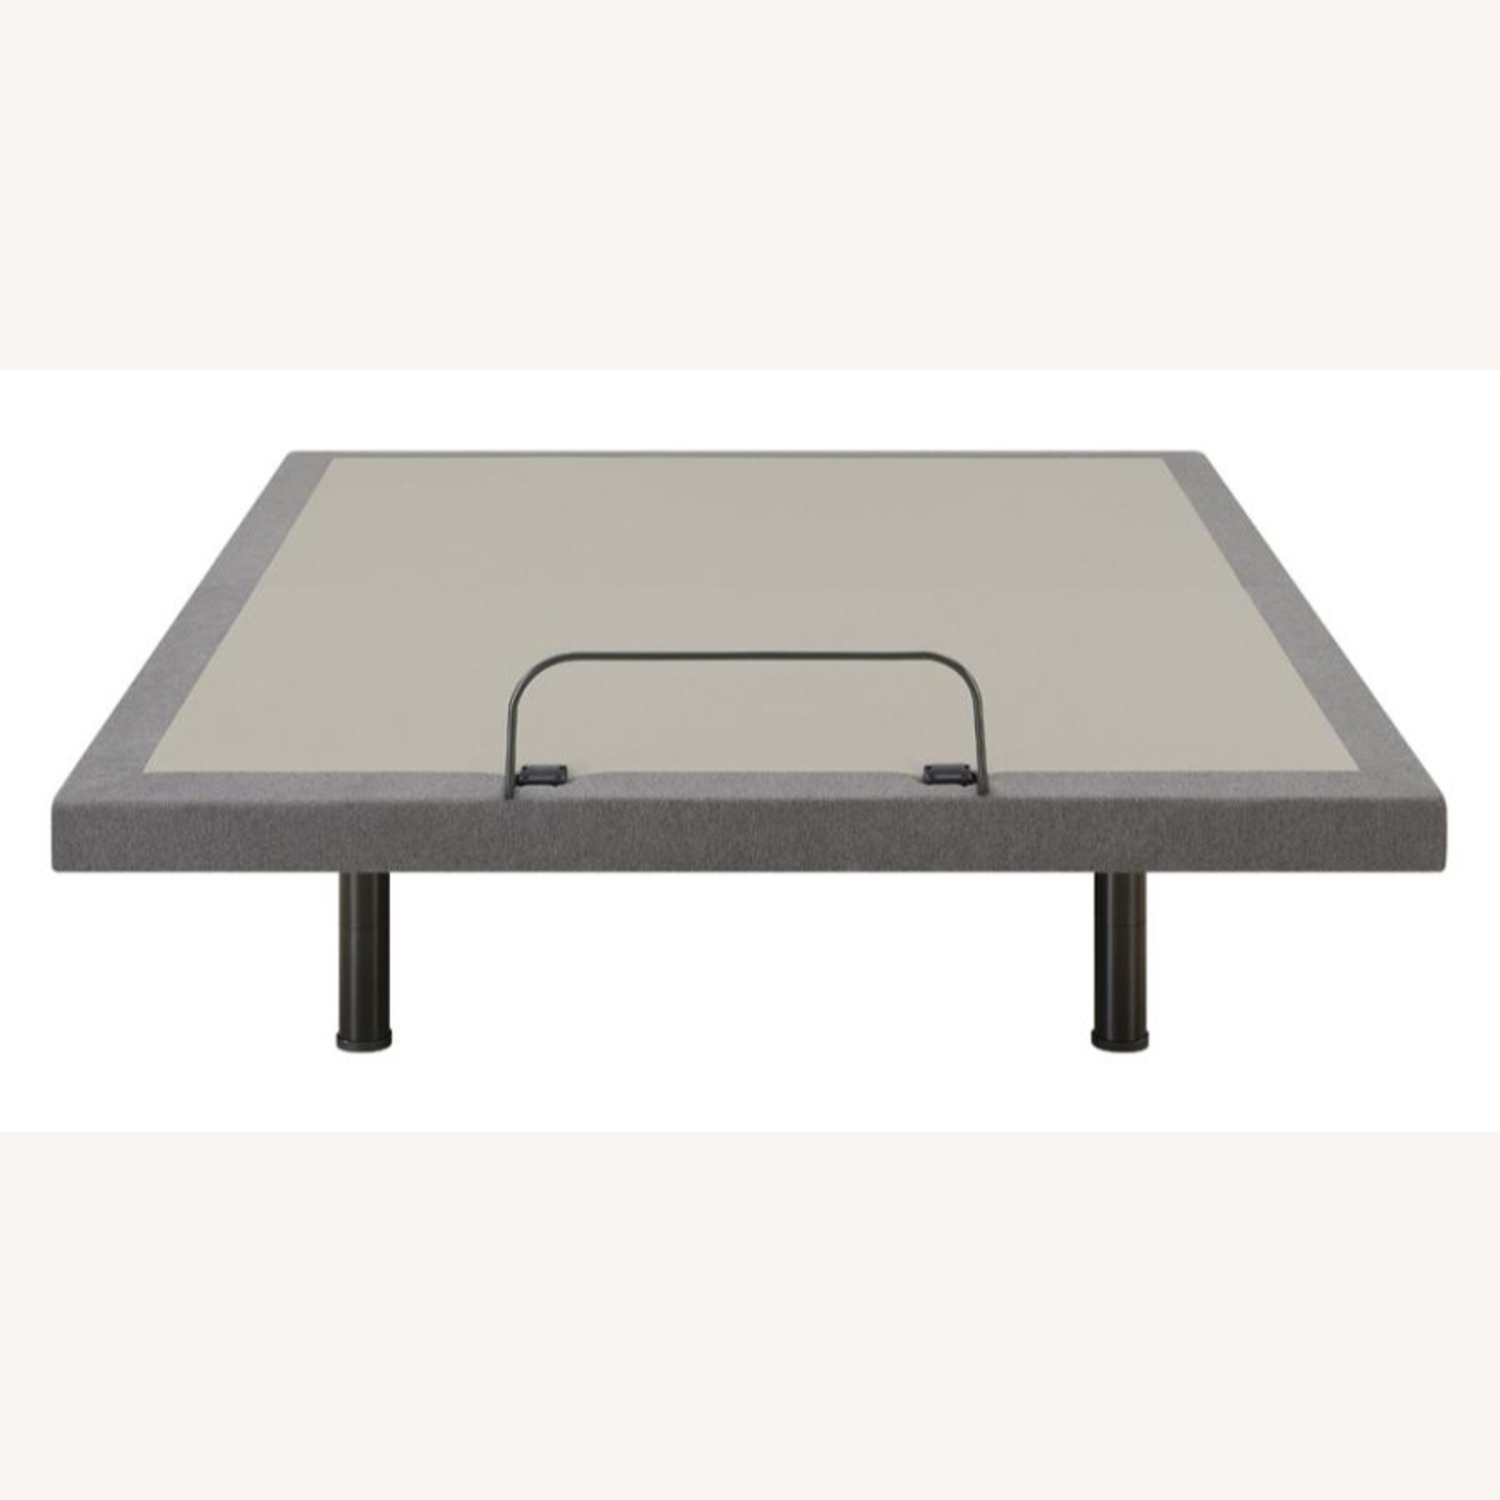 Queen Adjustable Bed Base In Grey Fabric Finish - image-3